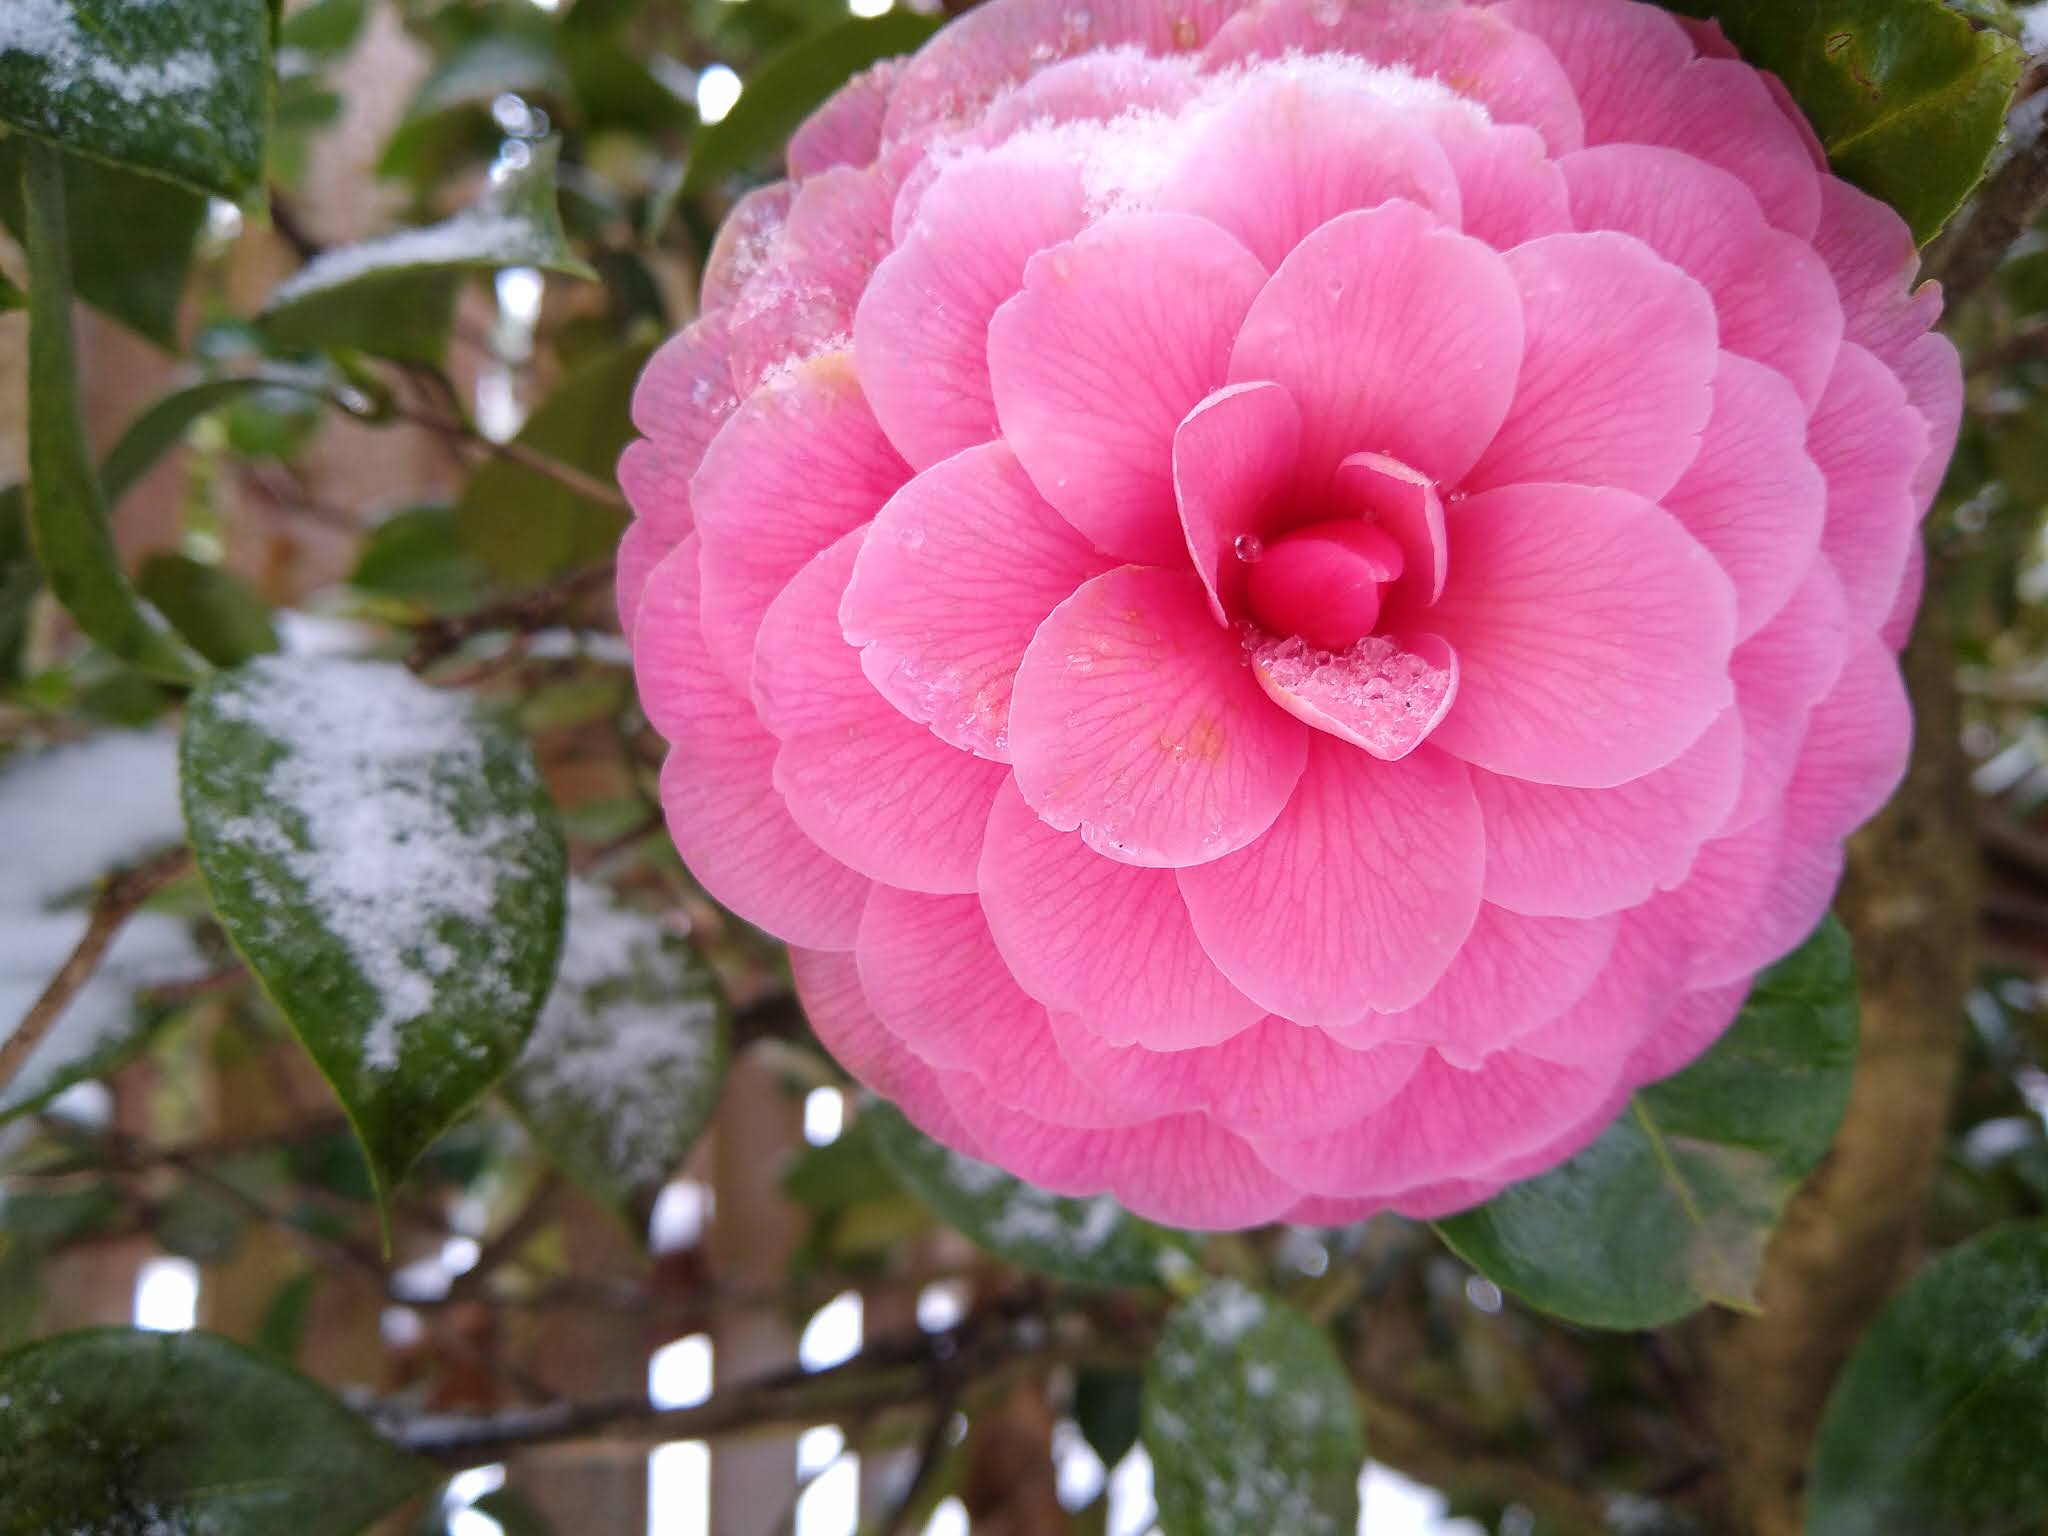 A large camellia bloom in snow